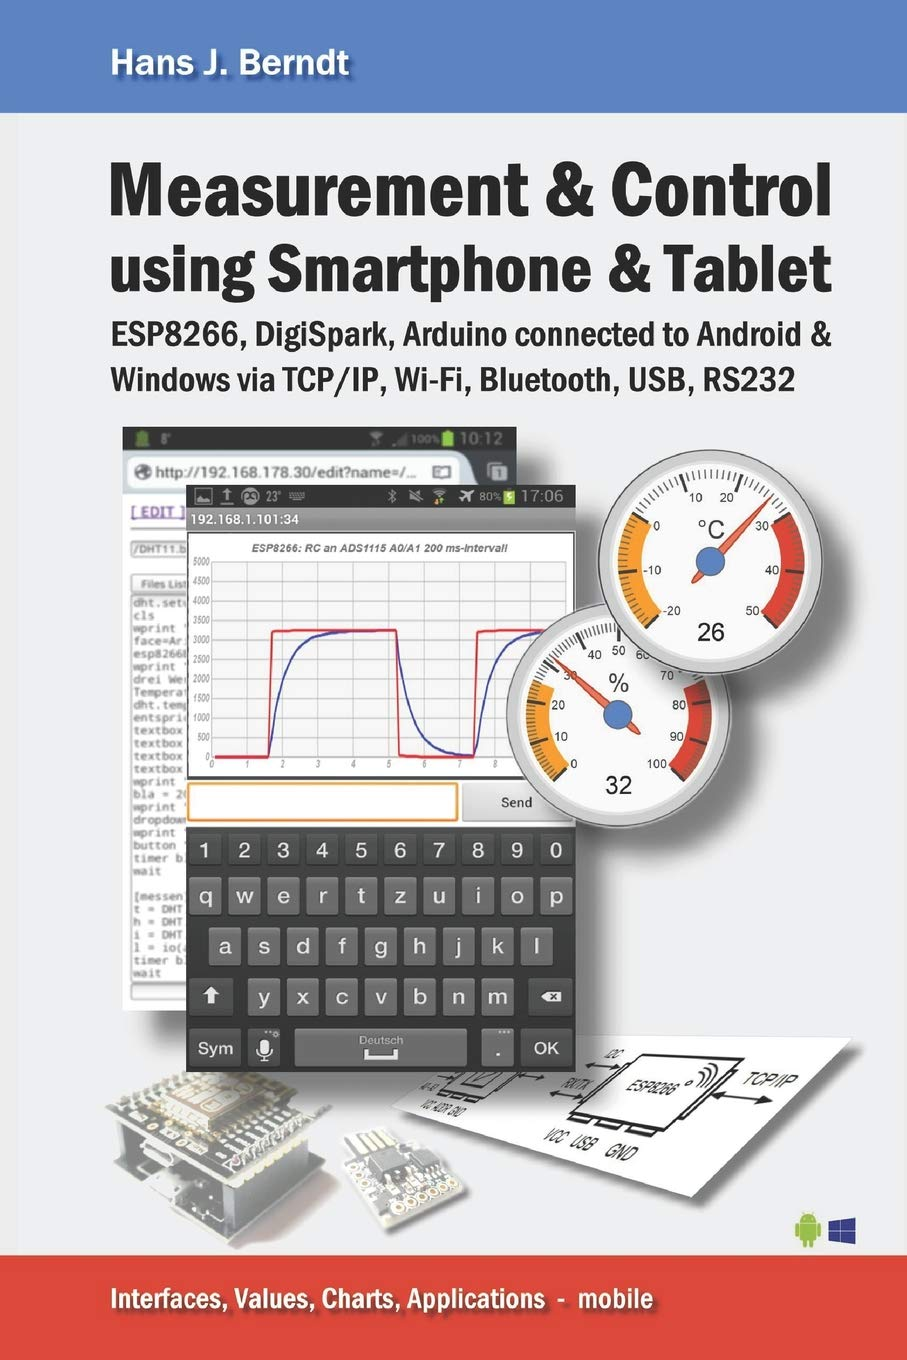 Measurement & Control using Smartphone & Tablet: Amazon.es: Berndt, Hans J.: Libros en idiomas extranjeros